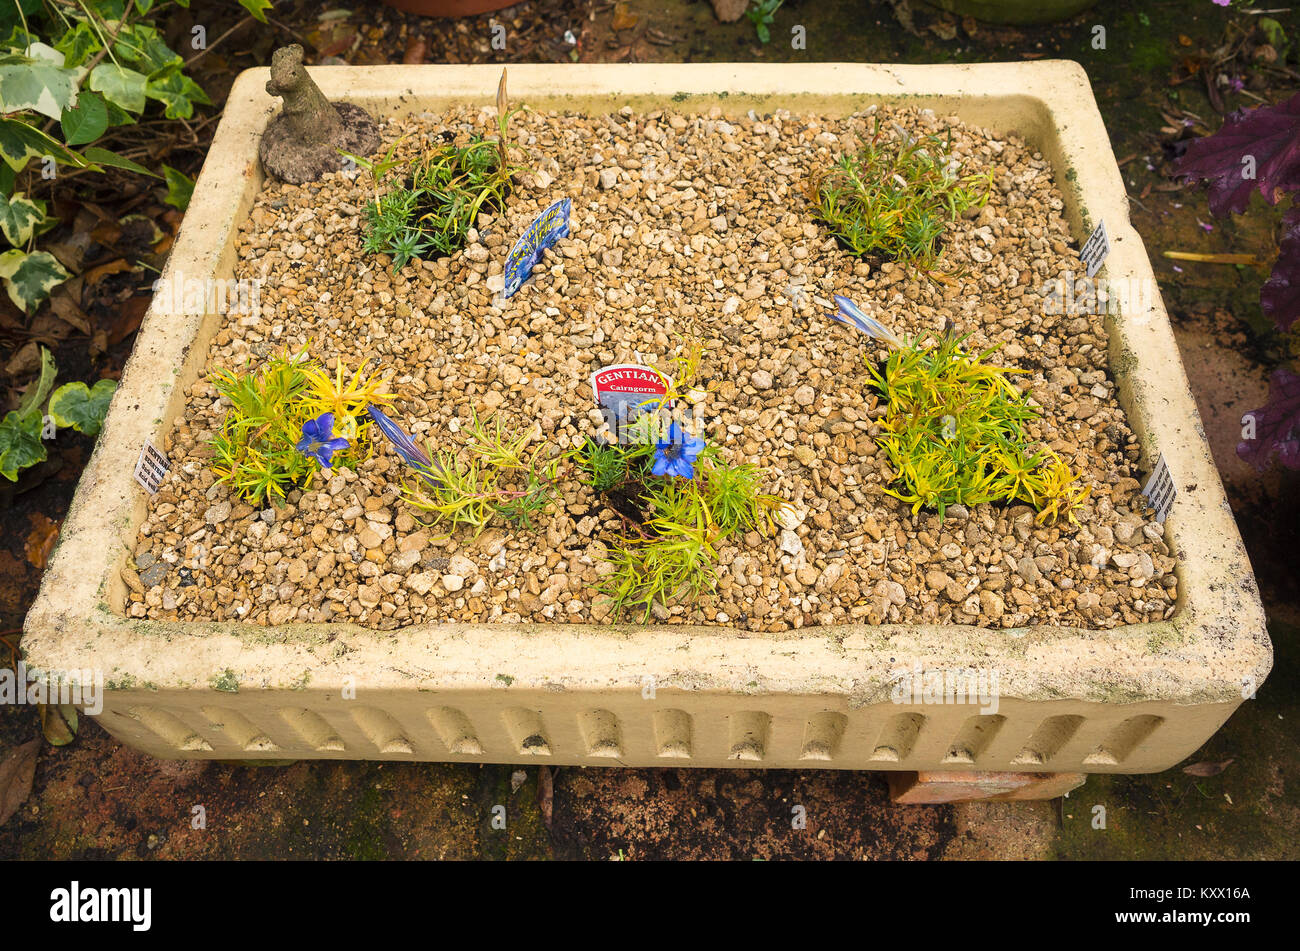 Recycled old sink used as a planter for a small collection of Gentian plants using gravel as a top dressing to proved - Stock Image